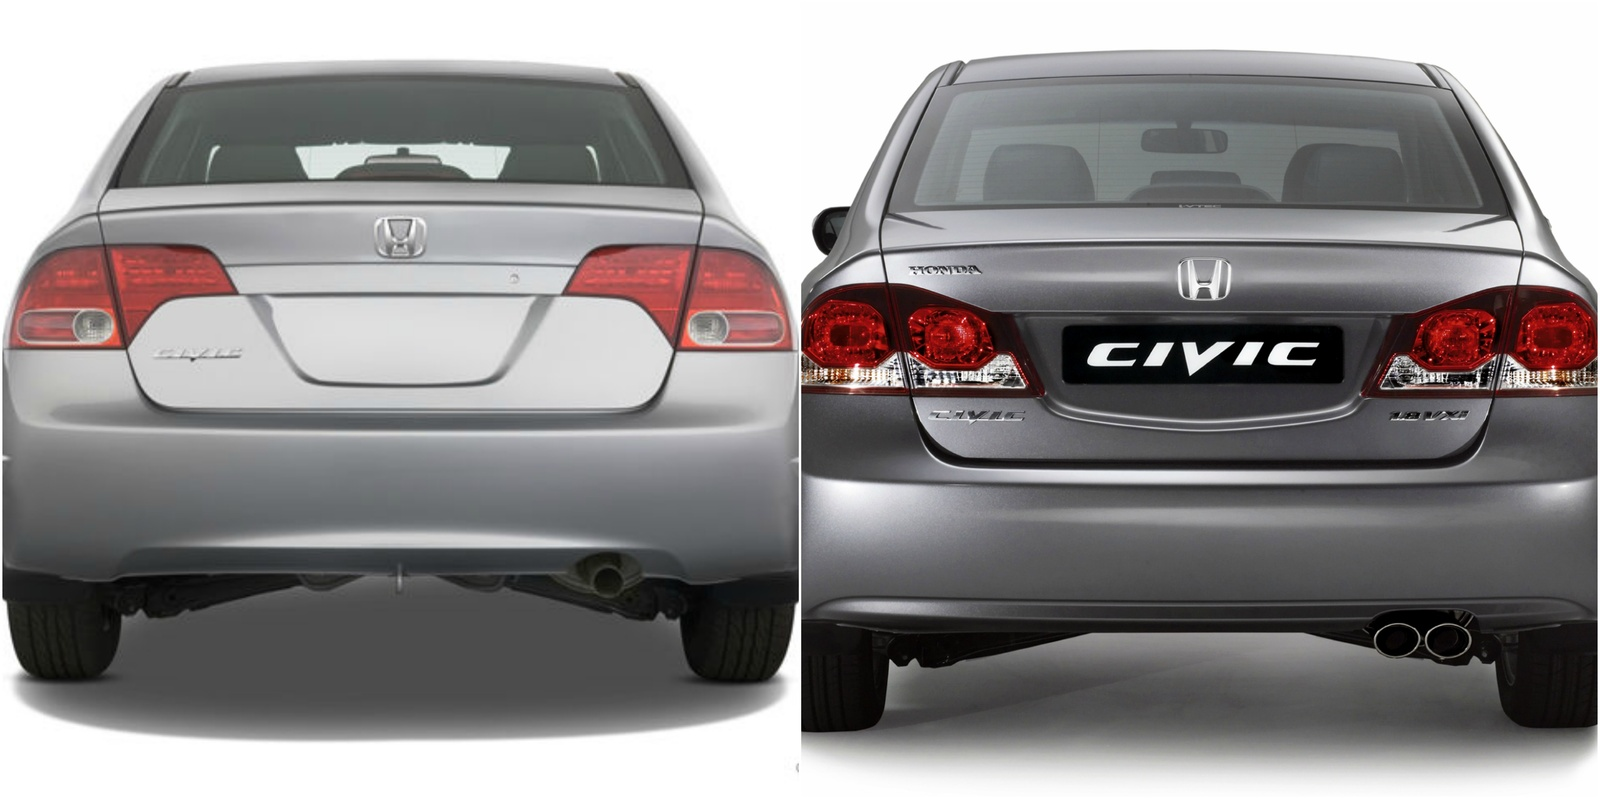 Why Does The 2008 Honda Civic In The USA Look Different Than Other Honda  Civics 2008 Outside Usa (EU,MIDDLE EAST)